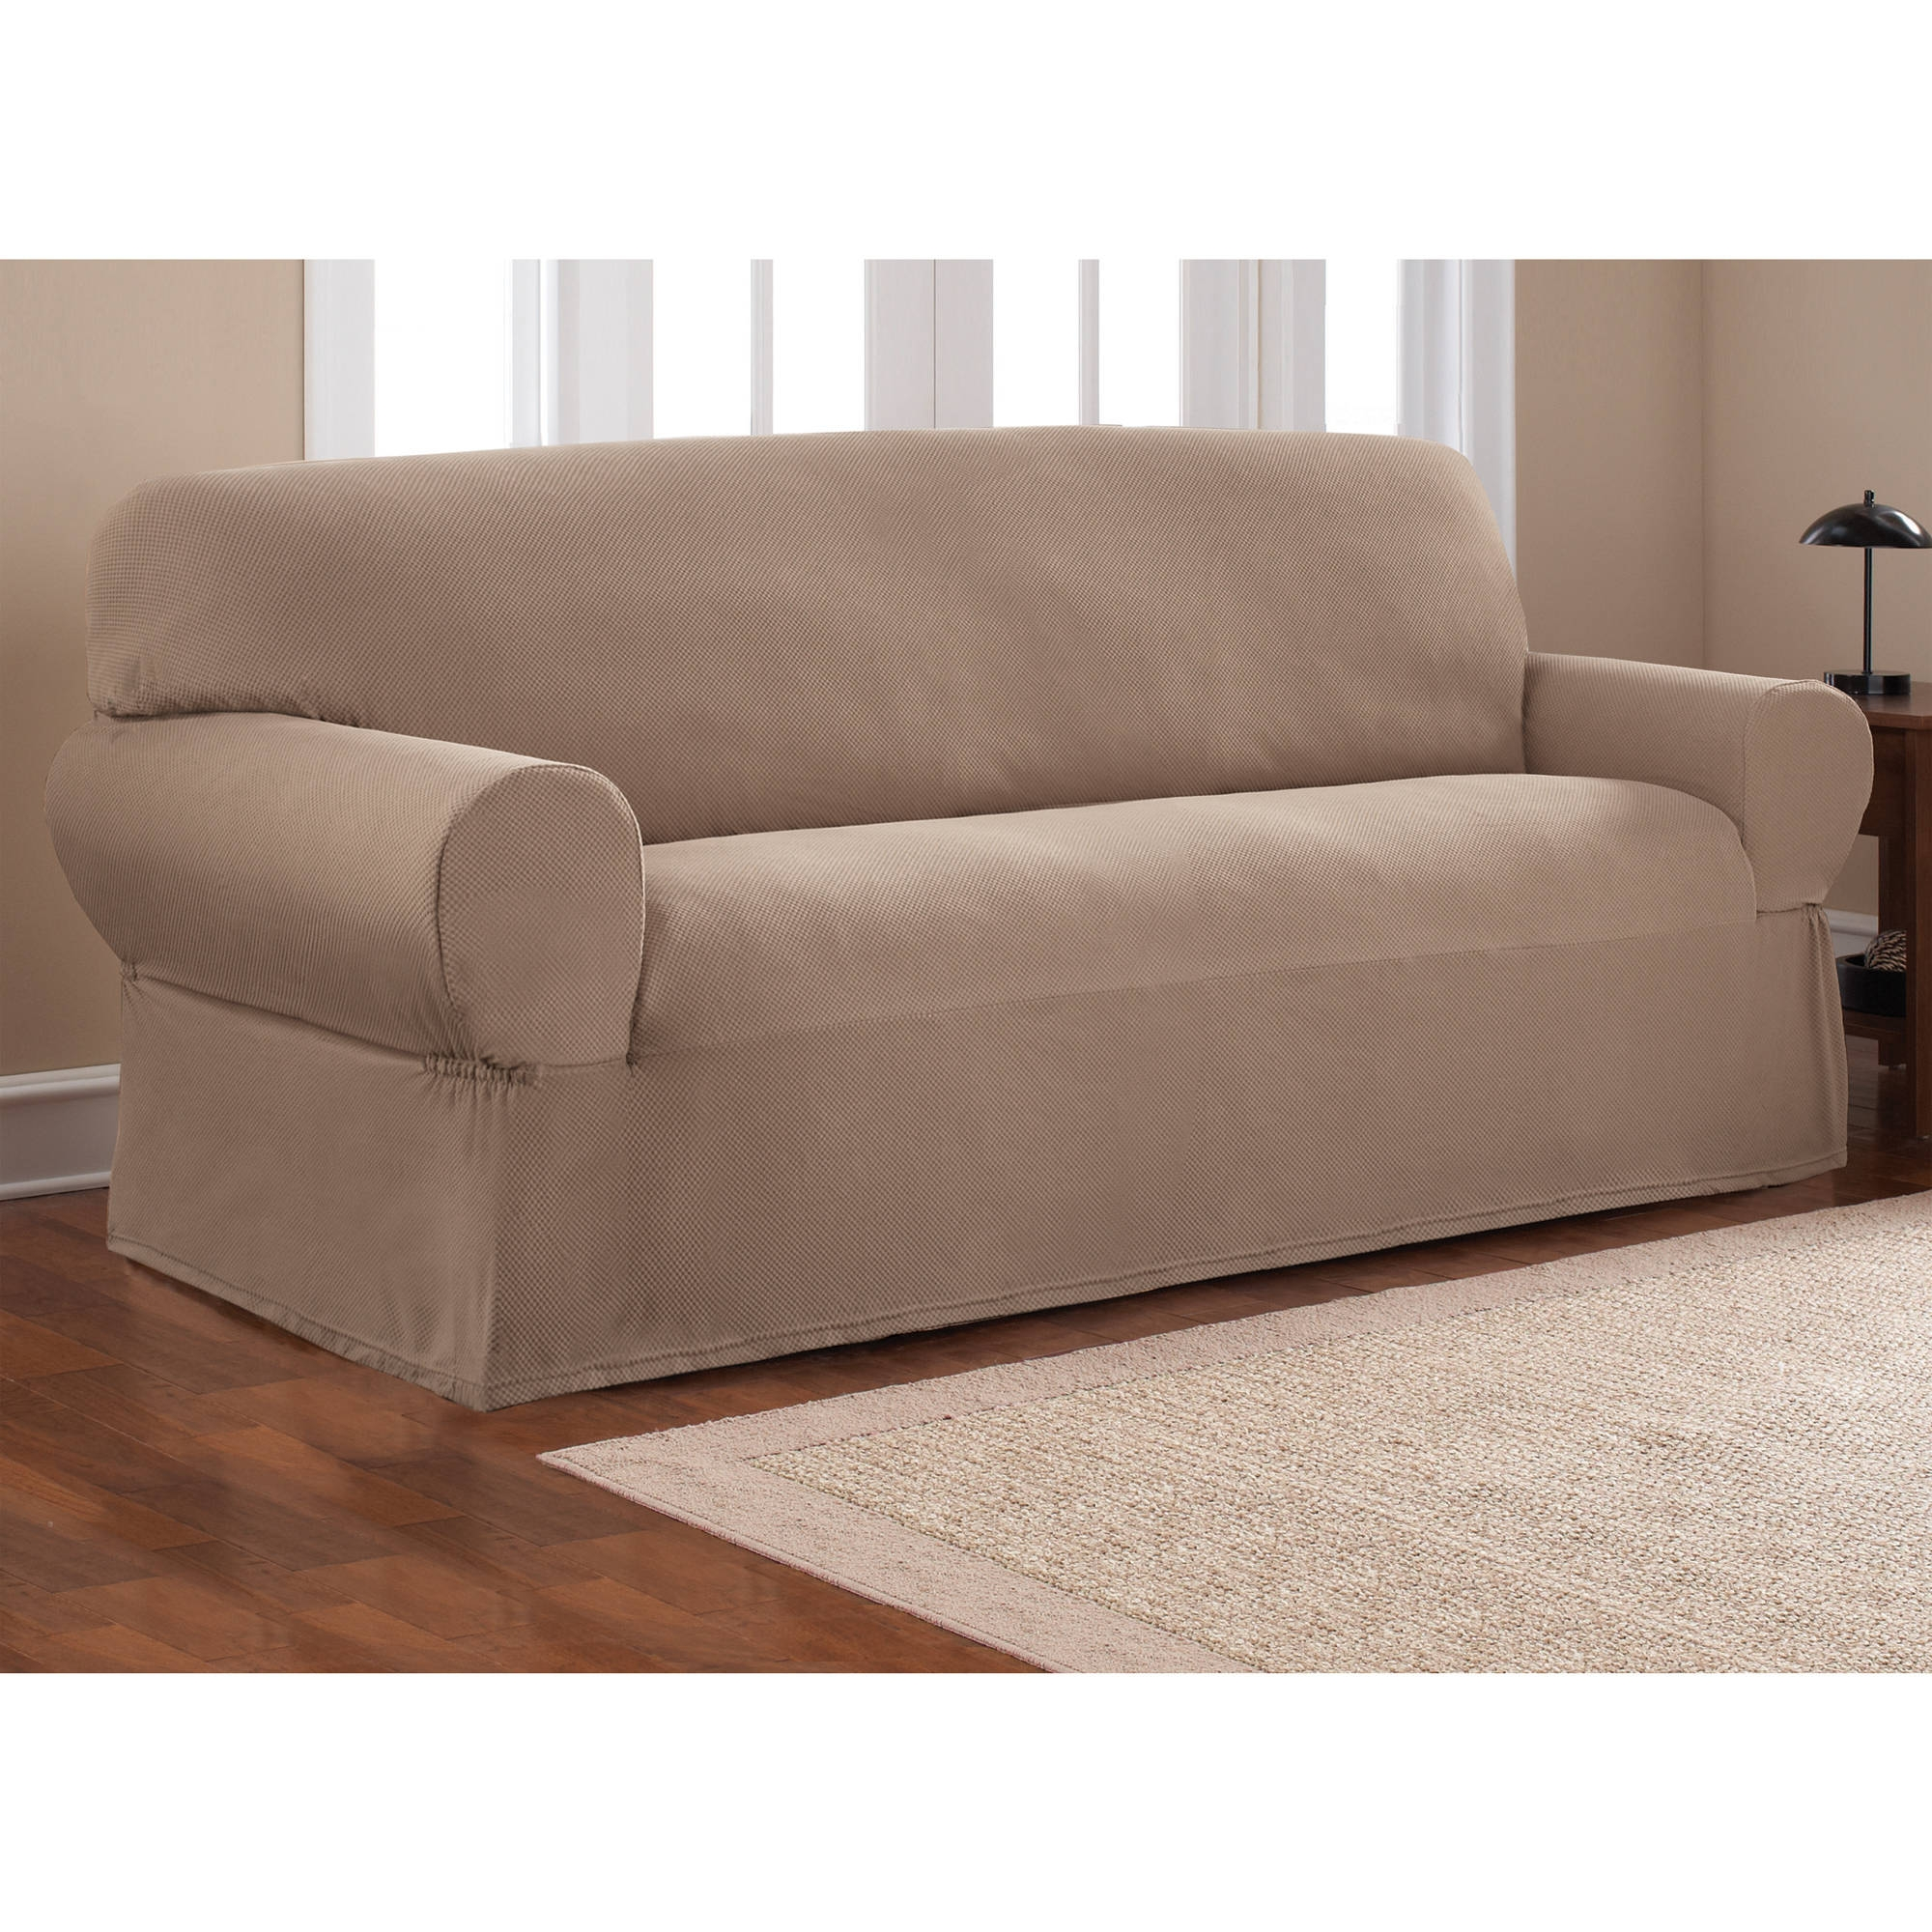 Decor Fascinating Sofa Covers Walmart For Alluring Furniture In Covers For Sofas (Image 6 of 15)